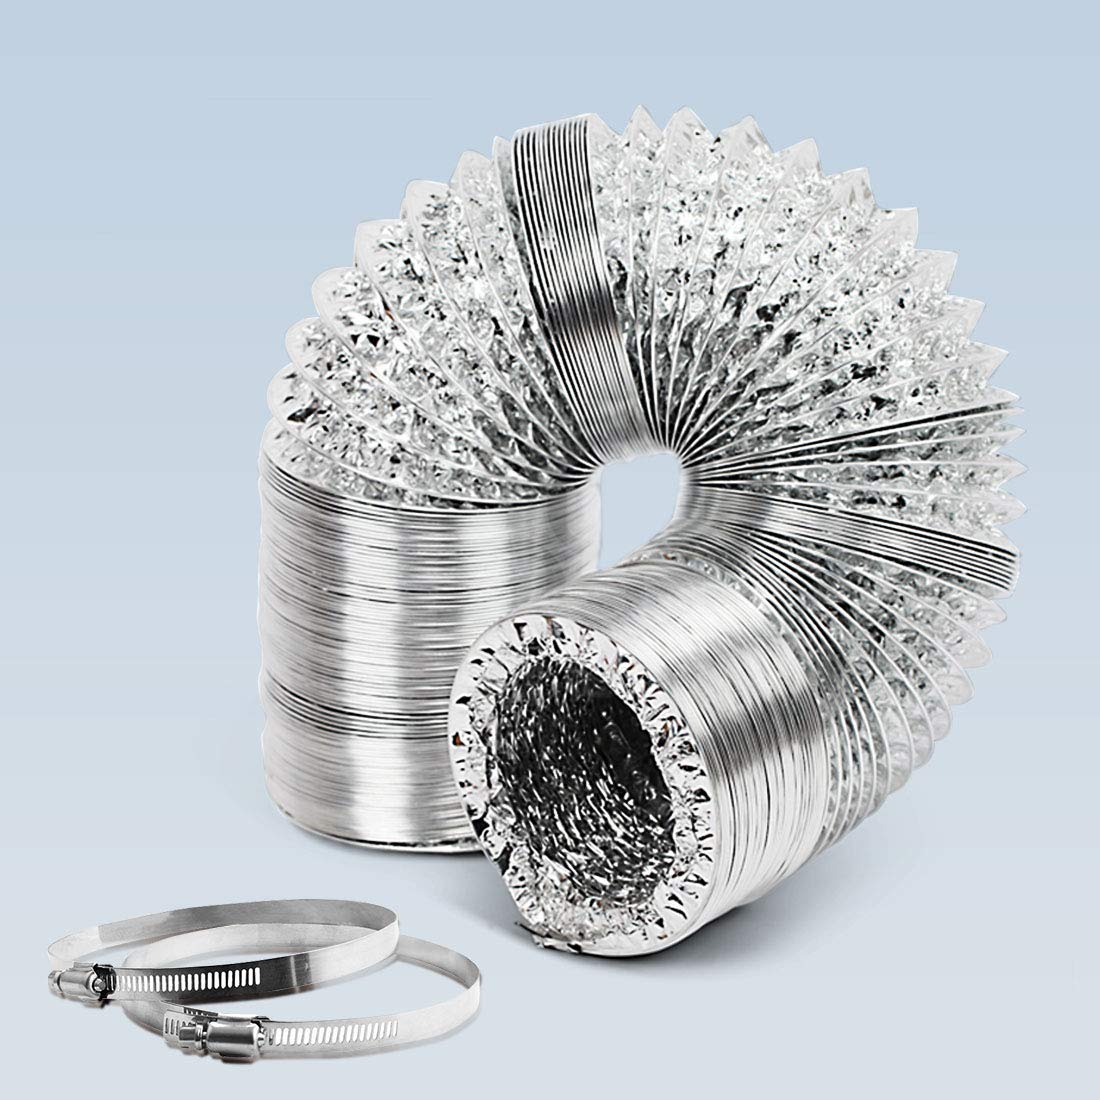 GROWNEER 6 Inch 25 Ft Aluminum Air Ducting with 2 Stainless Steel Clamps, Non-Insulated Flexible Air Duct Hose for HVAC Ventilation